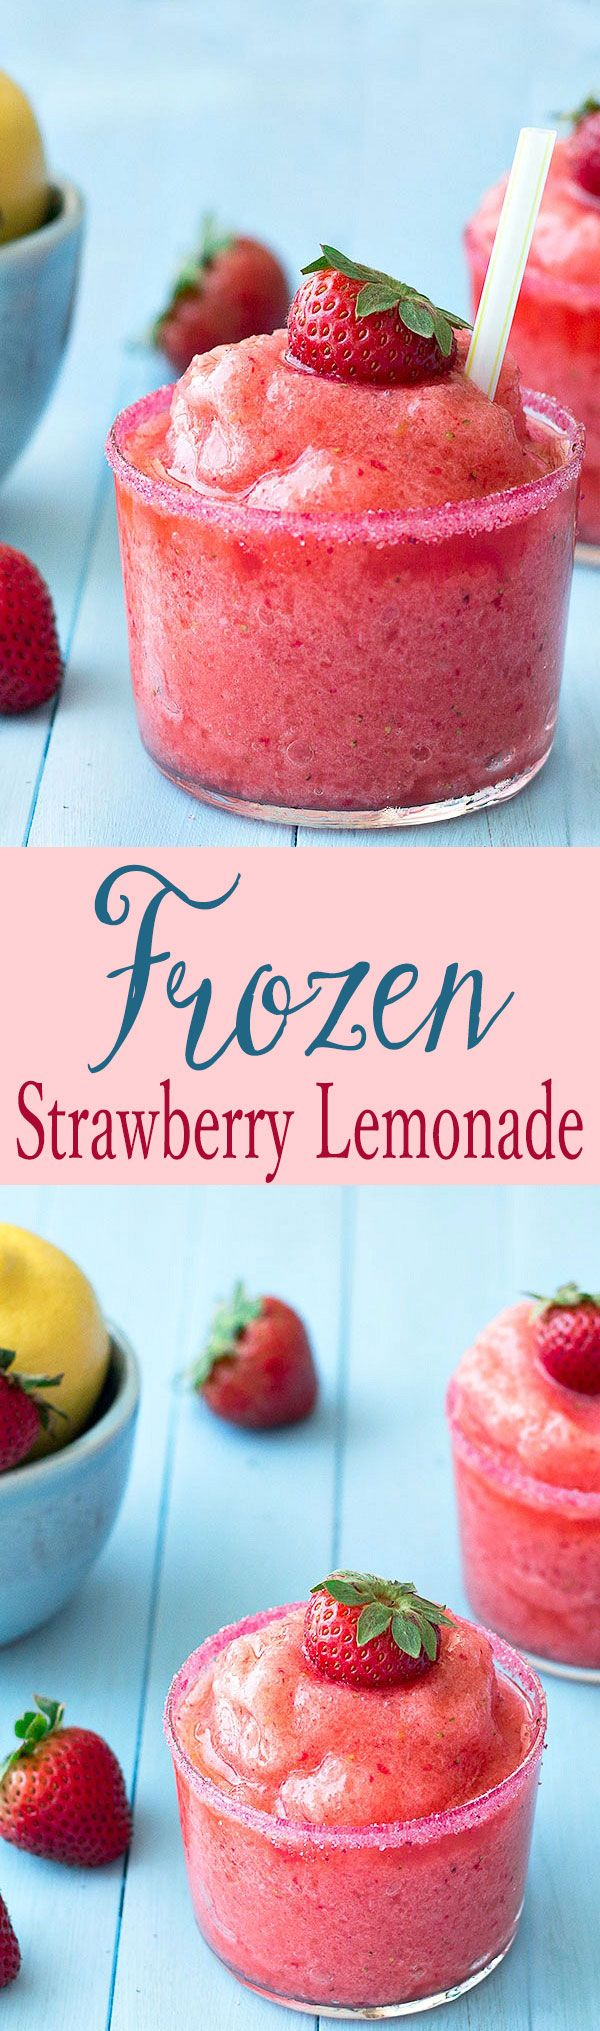 This frozen strawberry lemonade is so easy to make, full of fresh strawberries and tart lemons. Not too sour or too sweet, just perfect! xx